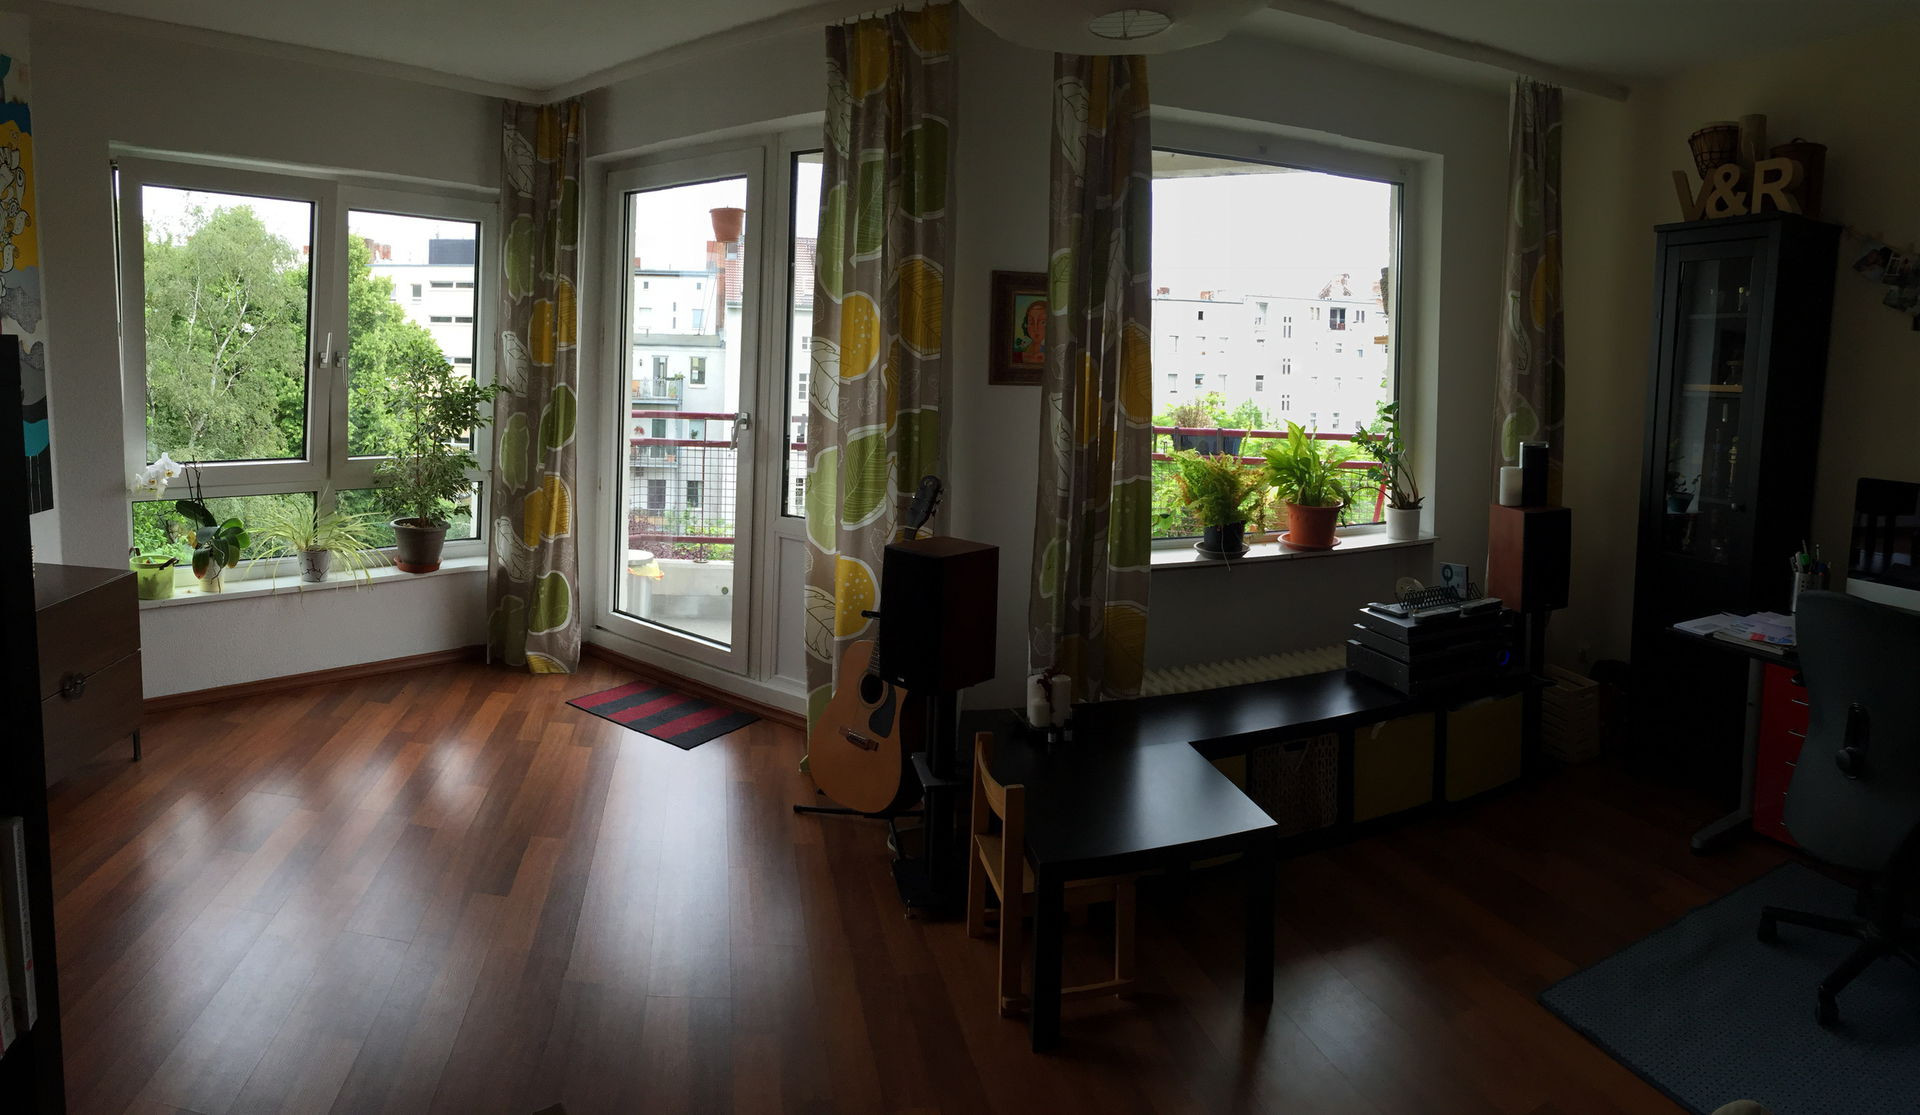 hardwood flooring hilo hawaii of family friendly 3 room flat in authentic tourist free central berlin inside living room east